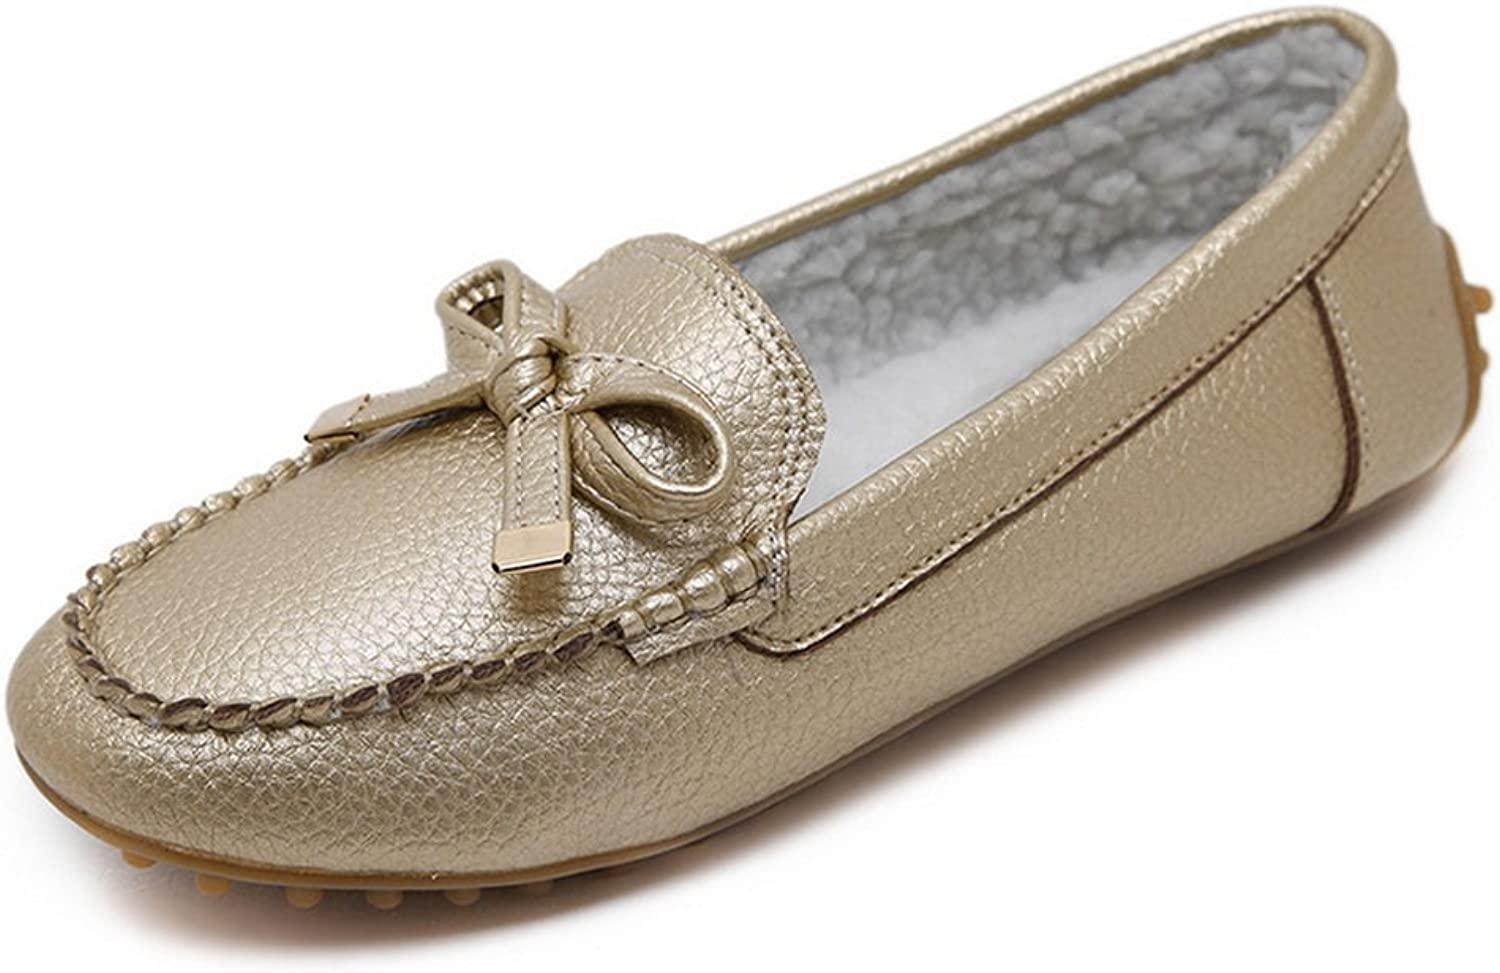 1TO9 Womens Bows Solid No-Closure gold Suede Flats shoes - 7.5 B(M) US